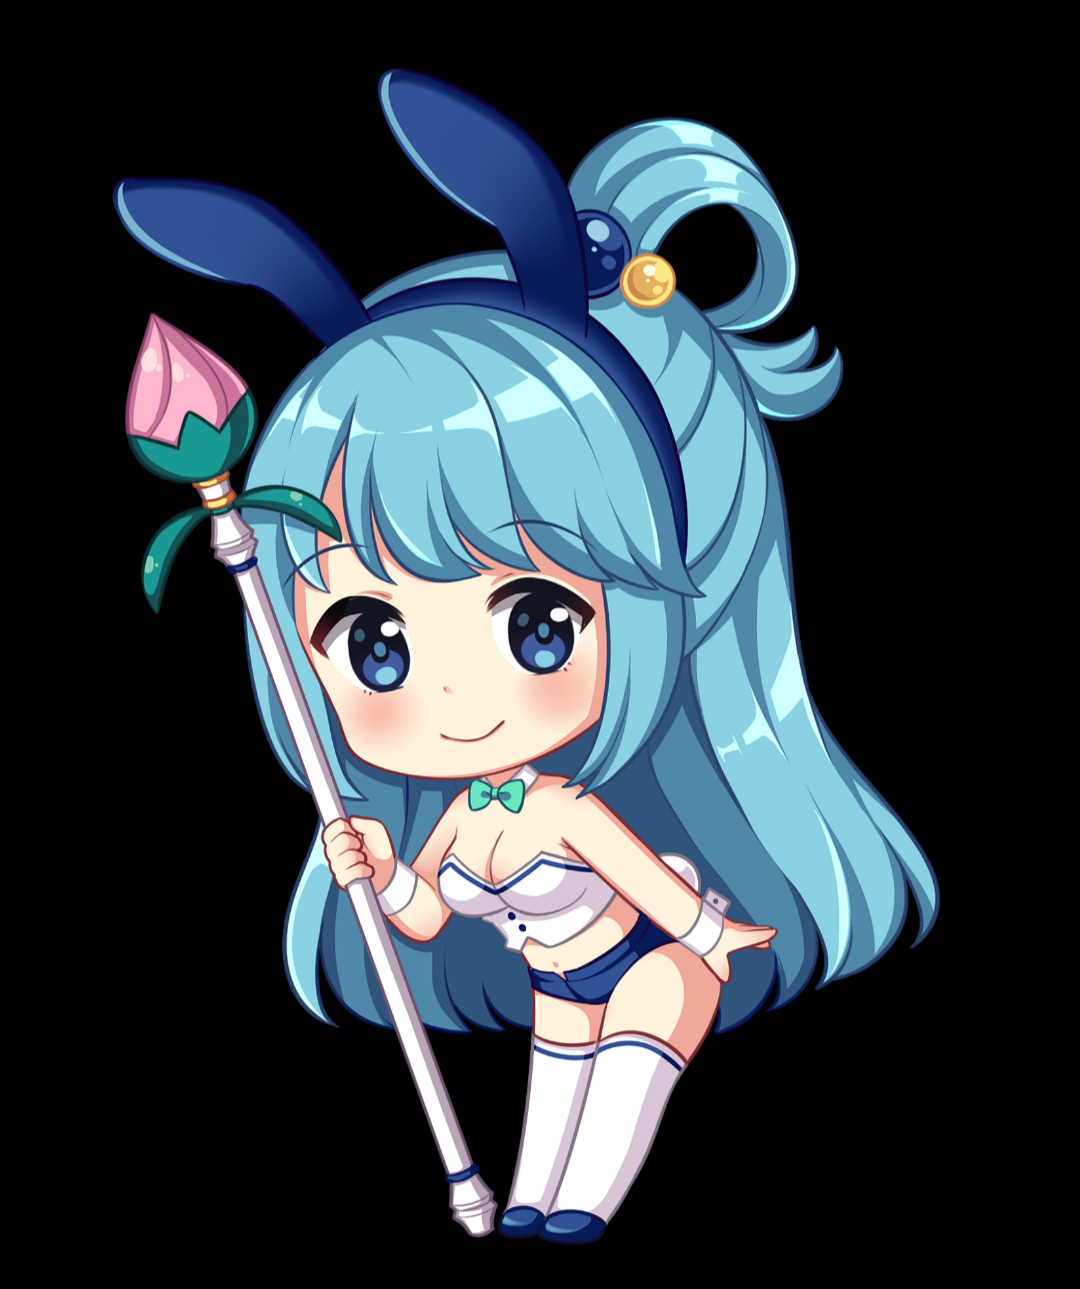 Aqua Chibi Konosuba Sticker Decal Transfer Sticker Waifu Wars Bunny Version